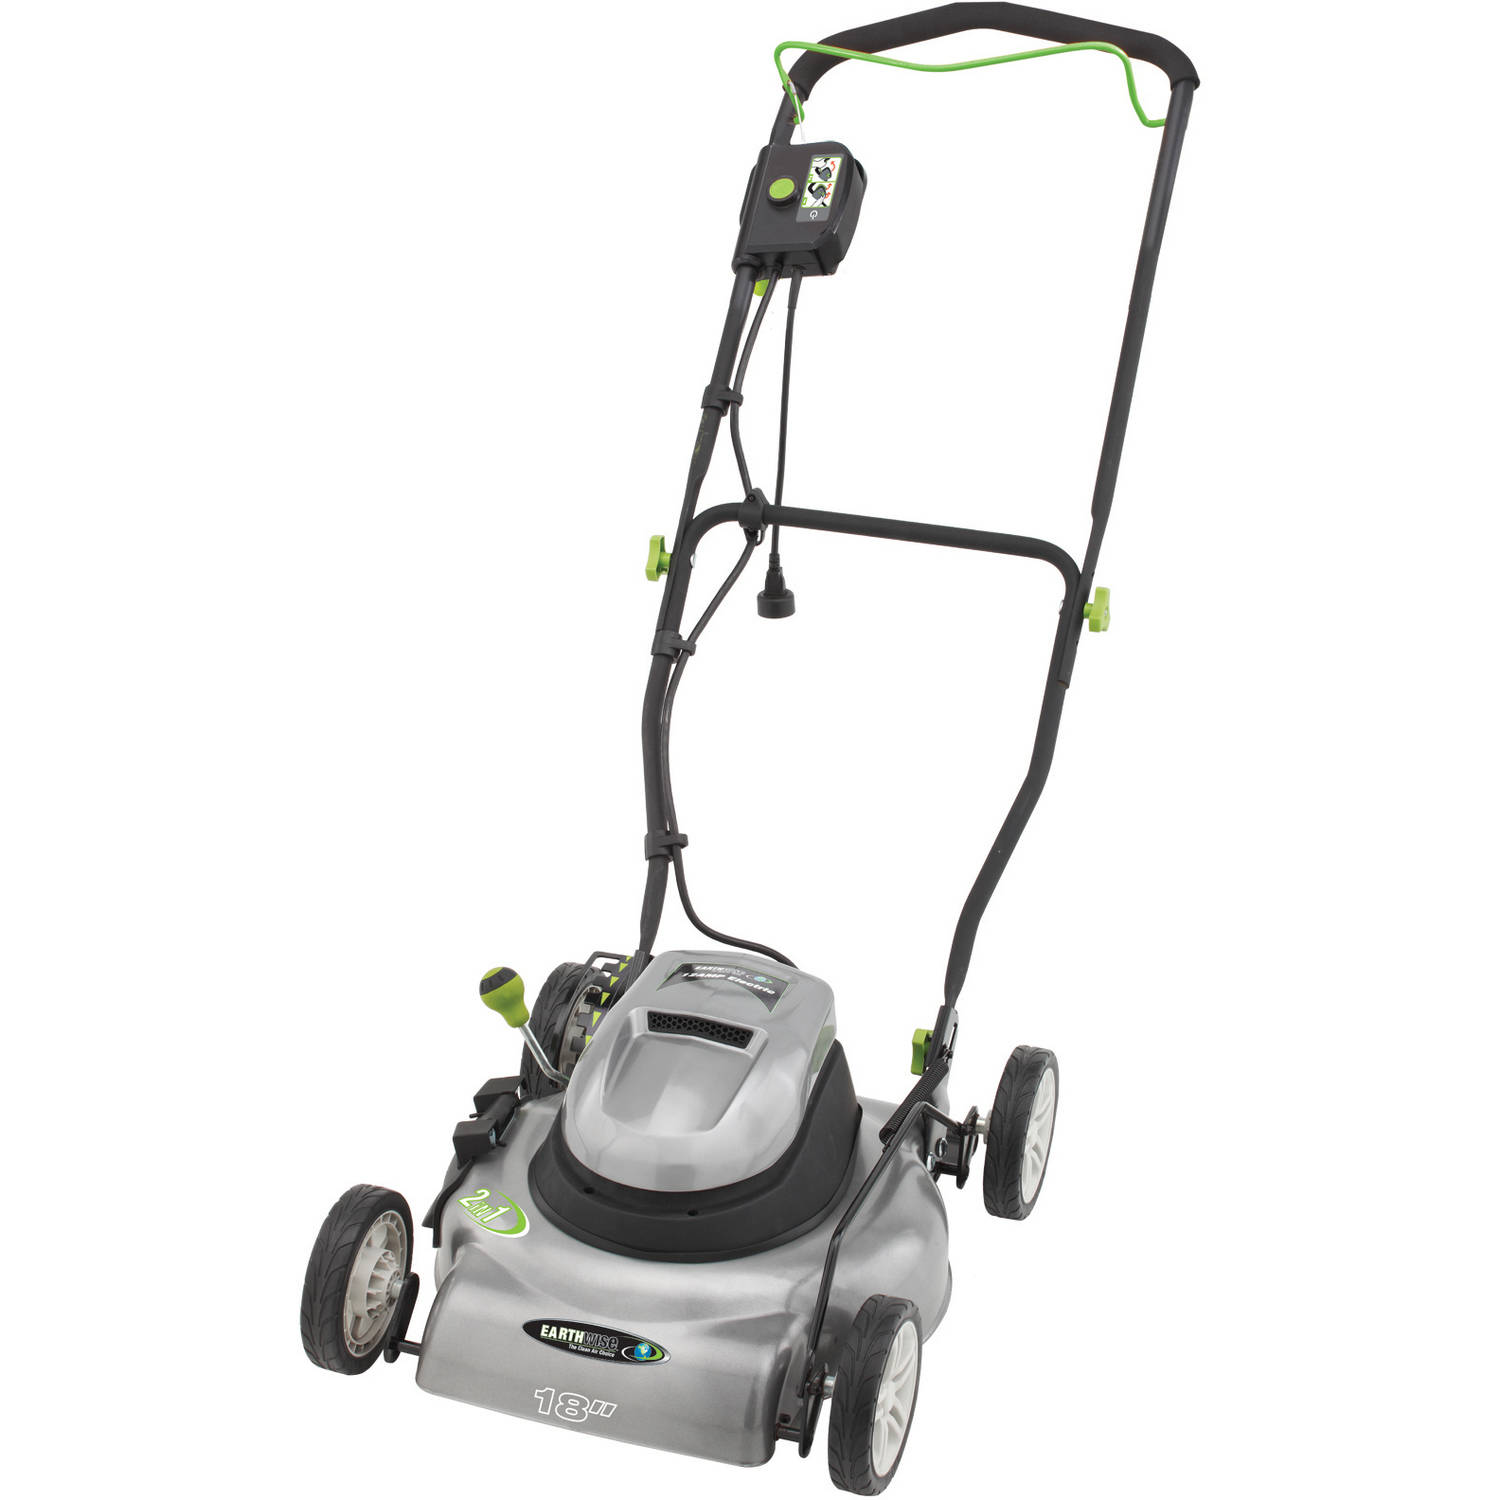 Earthwise 50518 12 Amp - 120V 18-Inch Corded Electric Lawn Mower 2-in-1 Discharge and Mulch